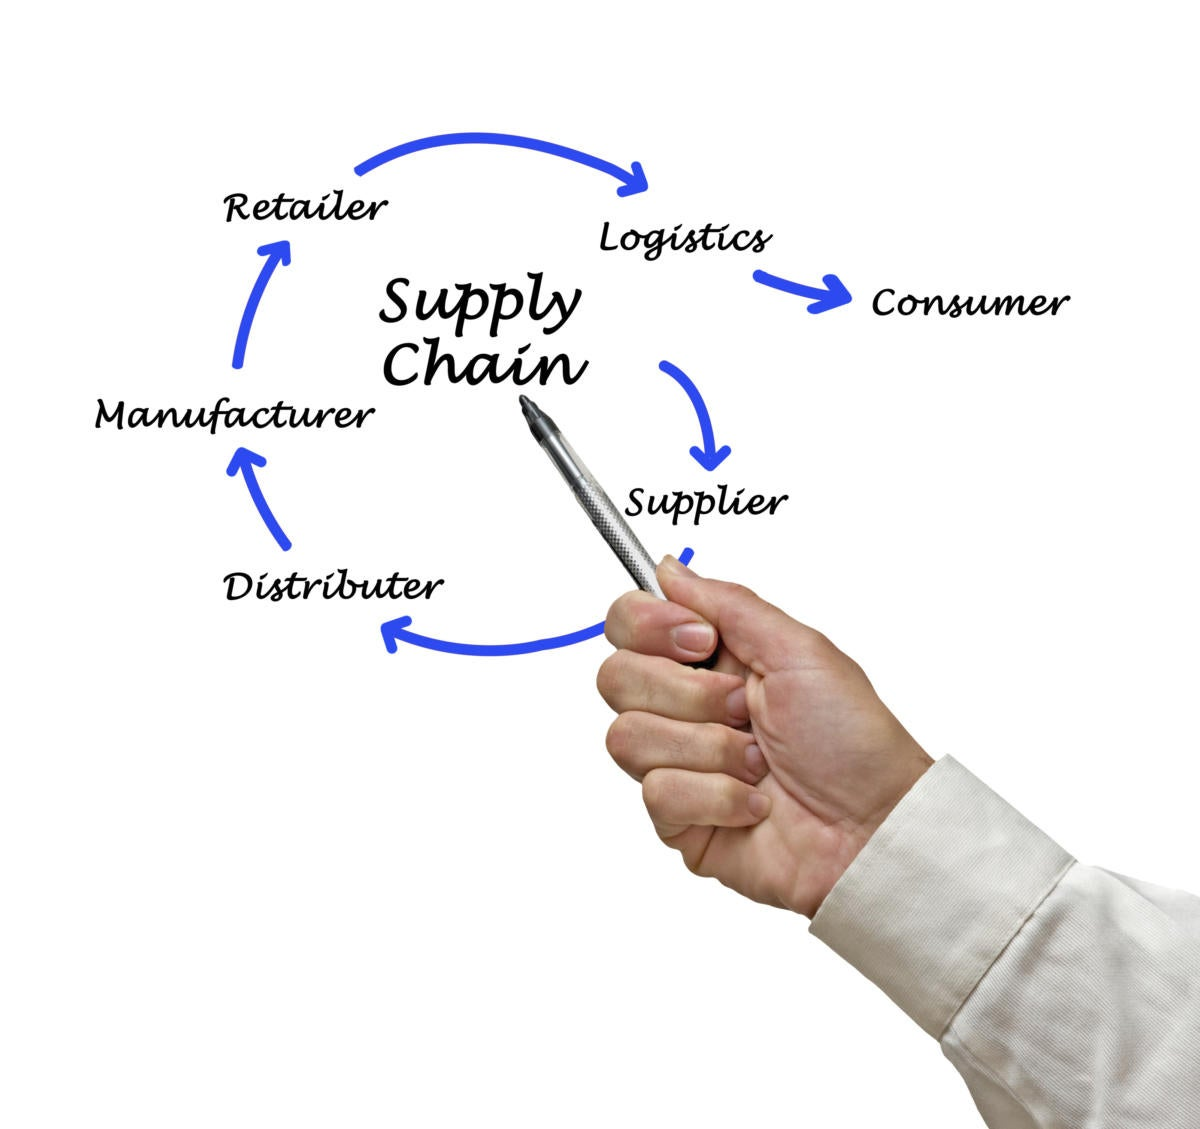 1b875f47111c5 4 ways retailers can improve supply chain management